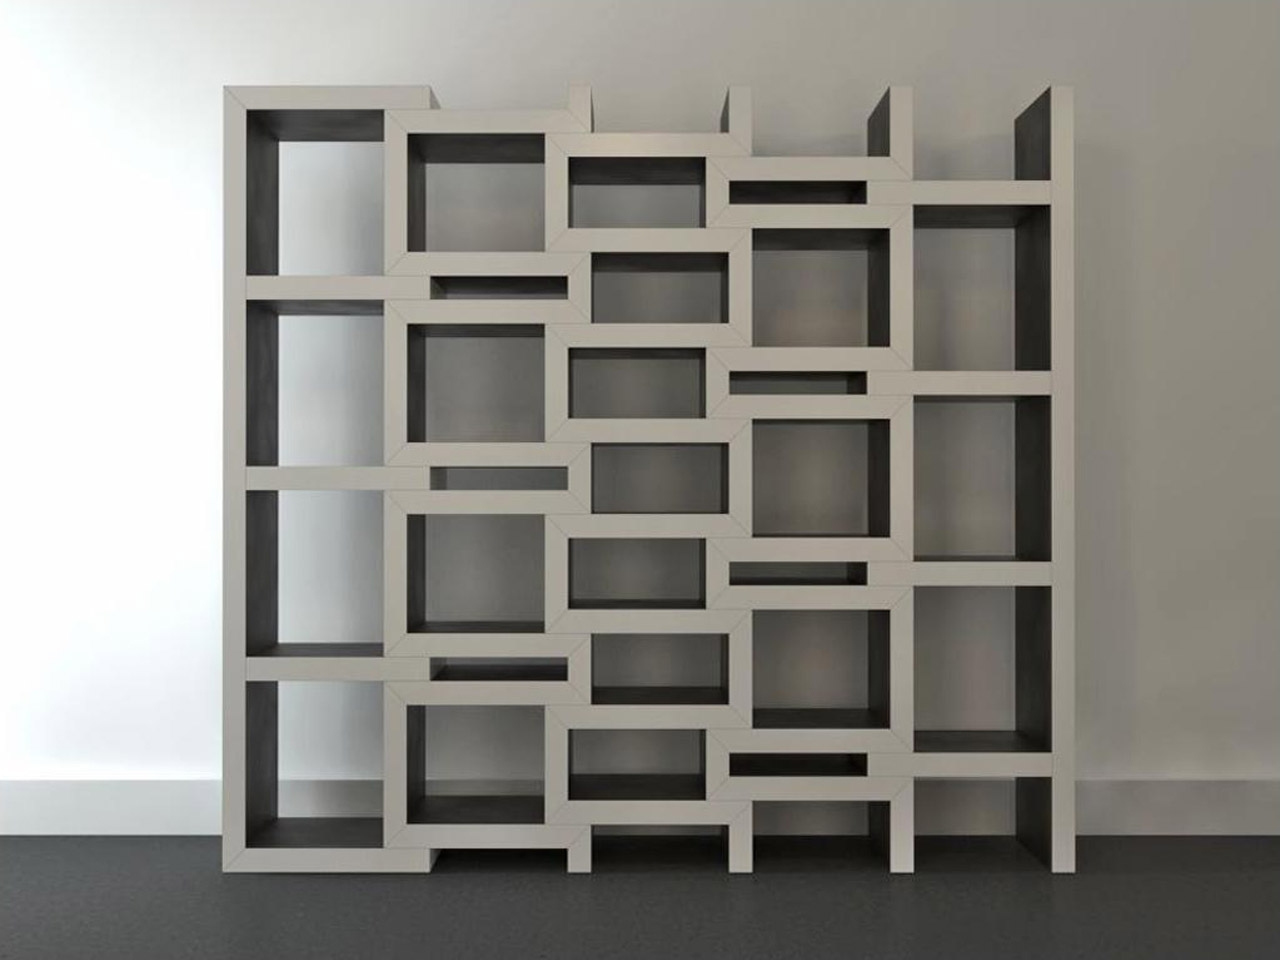 Best And Newest Bookcases Ideas: 10 Of The Most Creative Bookshelves Designs Pertaining To Unique Bookcases Designs (View 1 of 15)